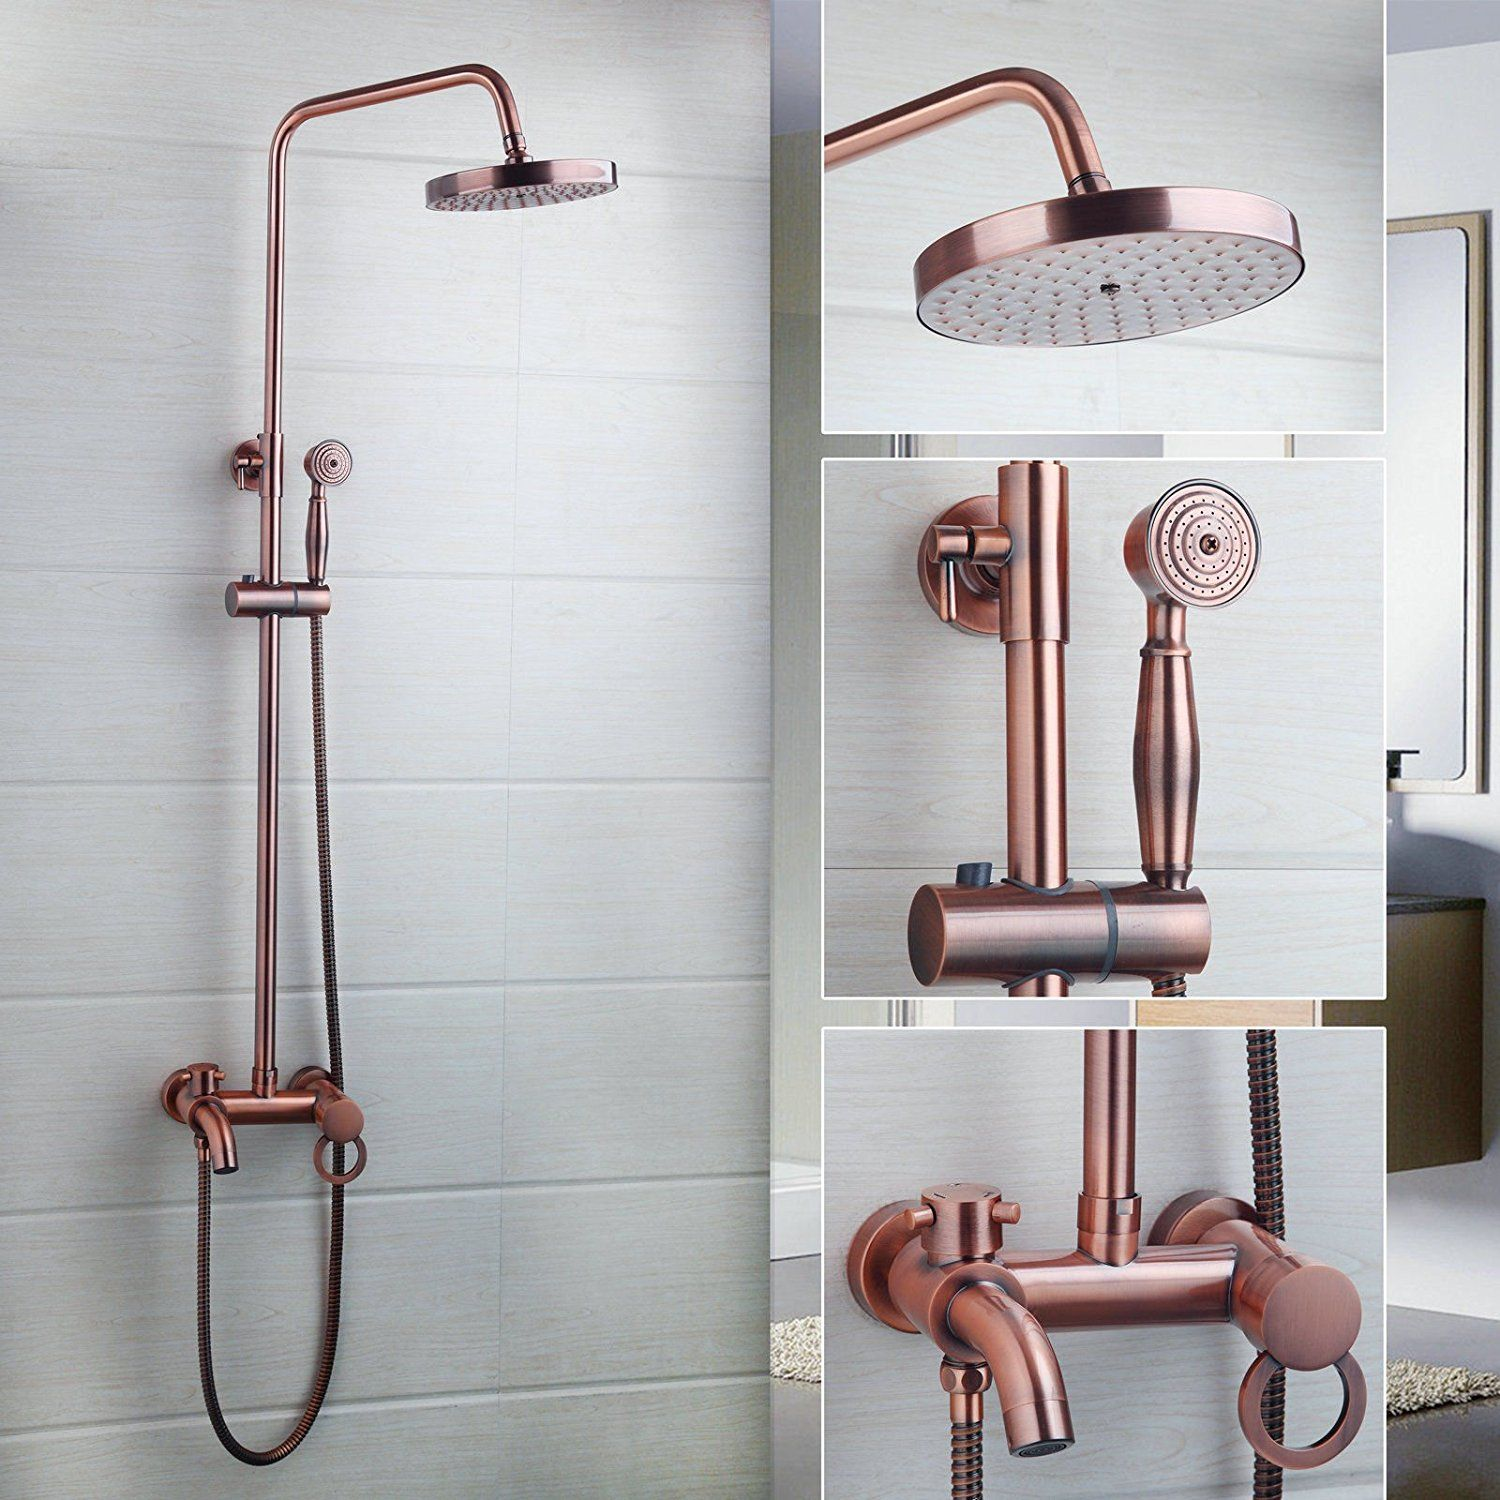 Ohcde Dheark Antique Copper Rainfall Shower Head Hand Faucet Set Spray Mixer Wall Mounted Amazo Banos De Estilo Rustico Alcachofas De Ducha Platos De Ducha